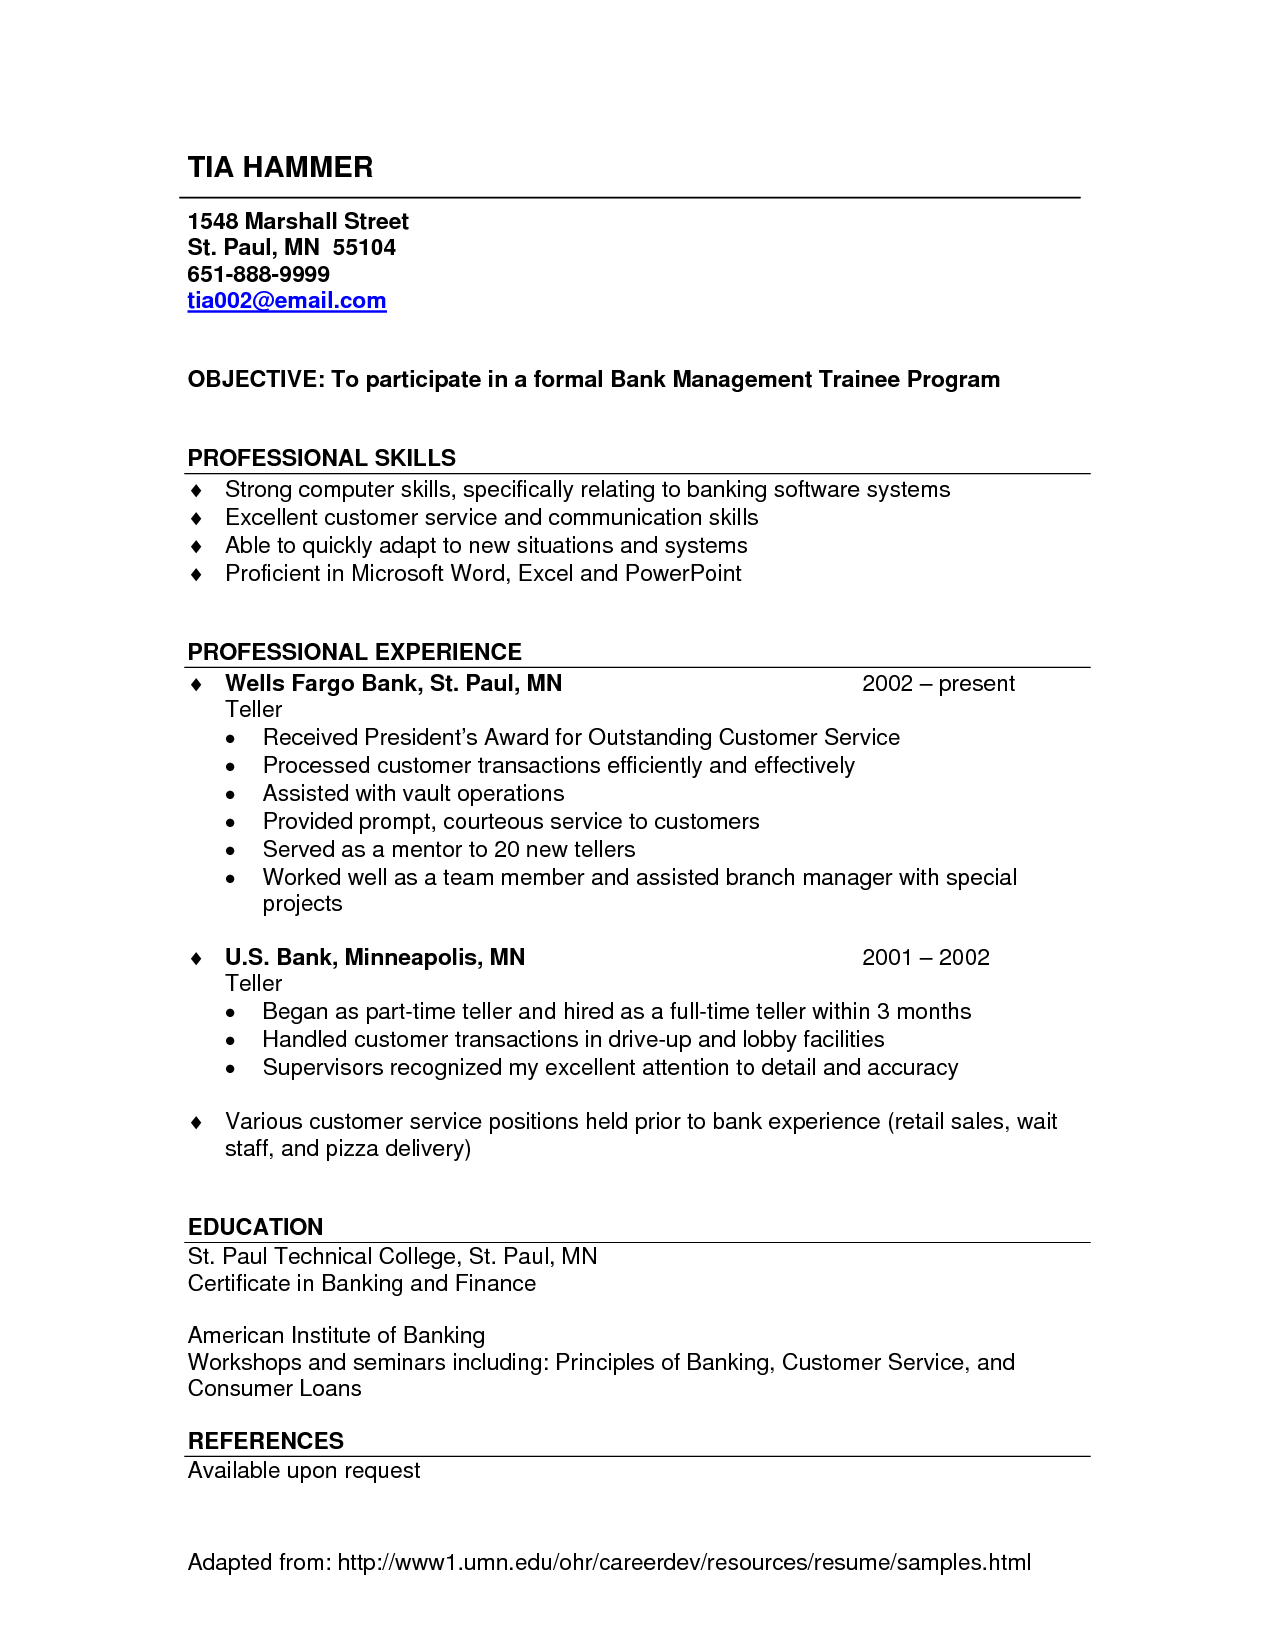 bank teller resume template Collection-Resume Examples Bank Teller examples resume ResumeExamples teller 7-q